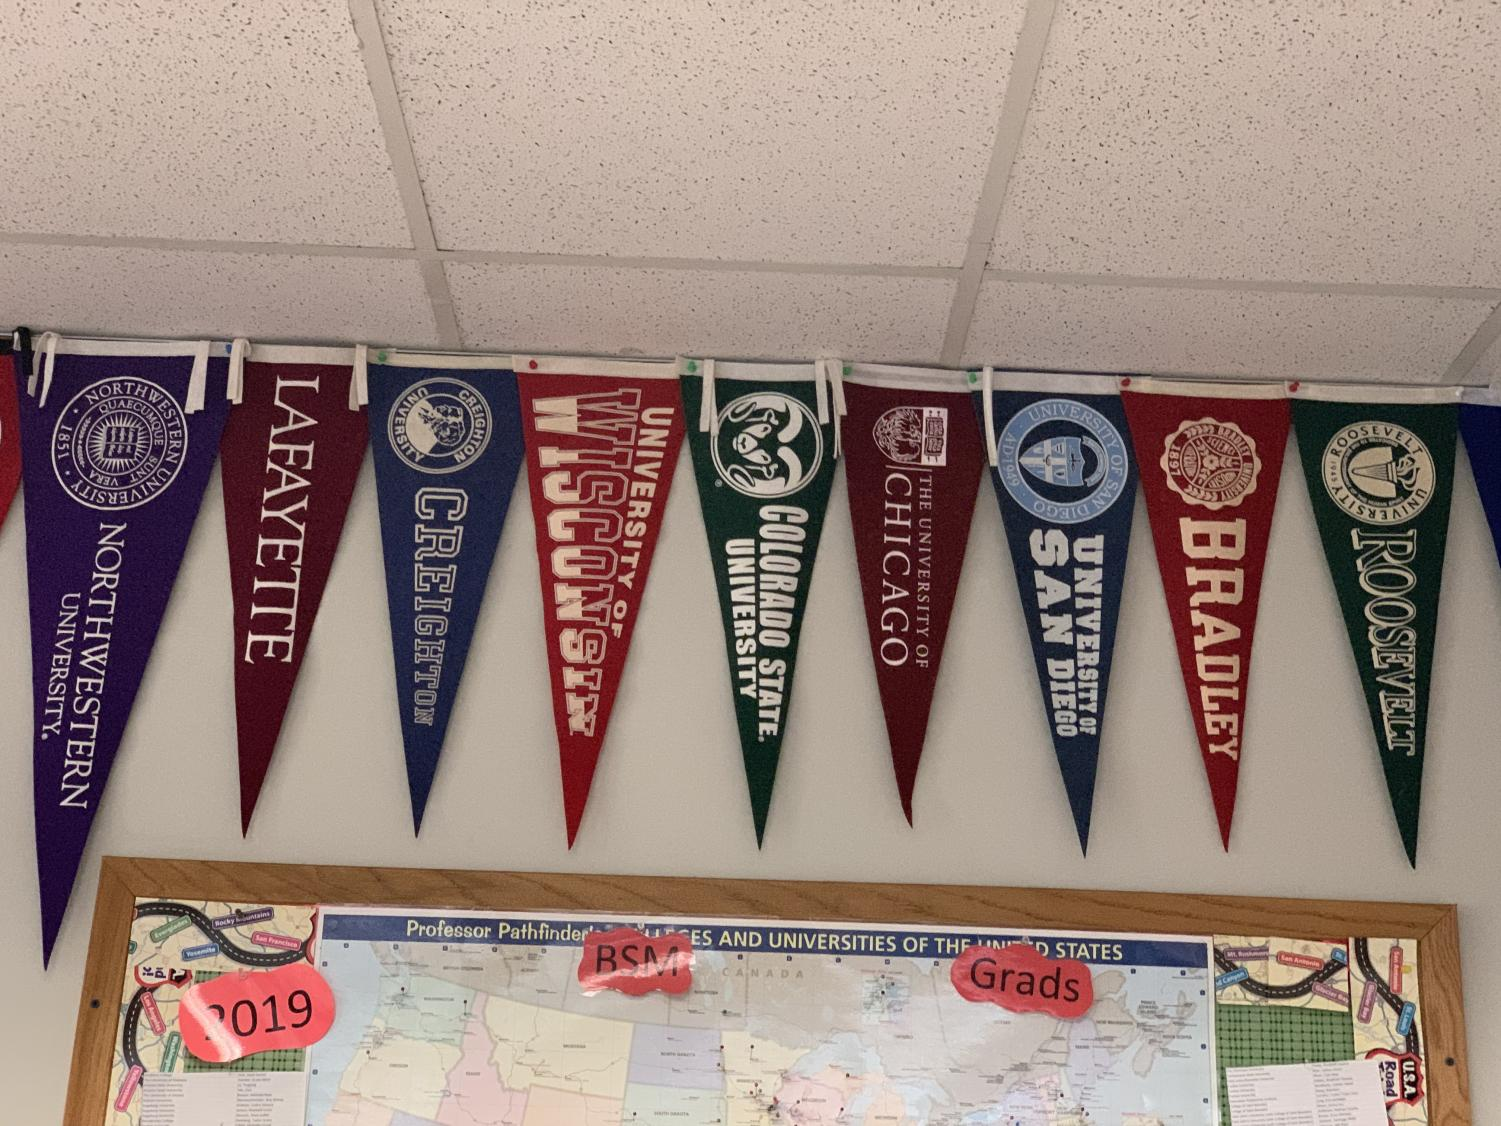 College visits help students determine if they see themselves there.